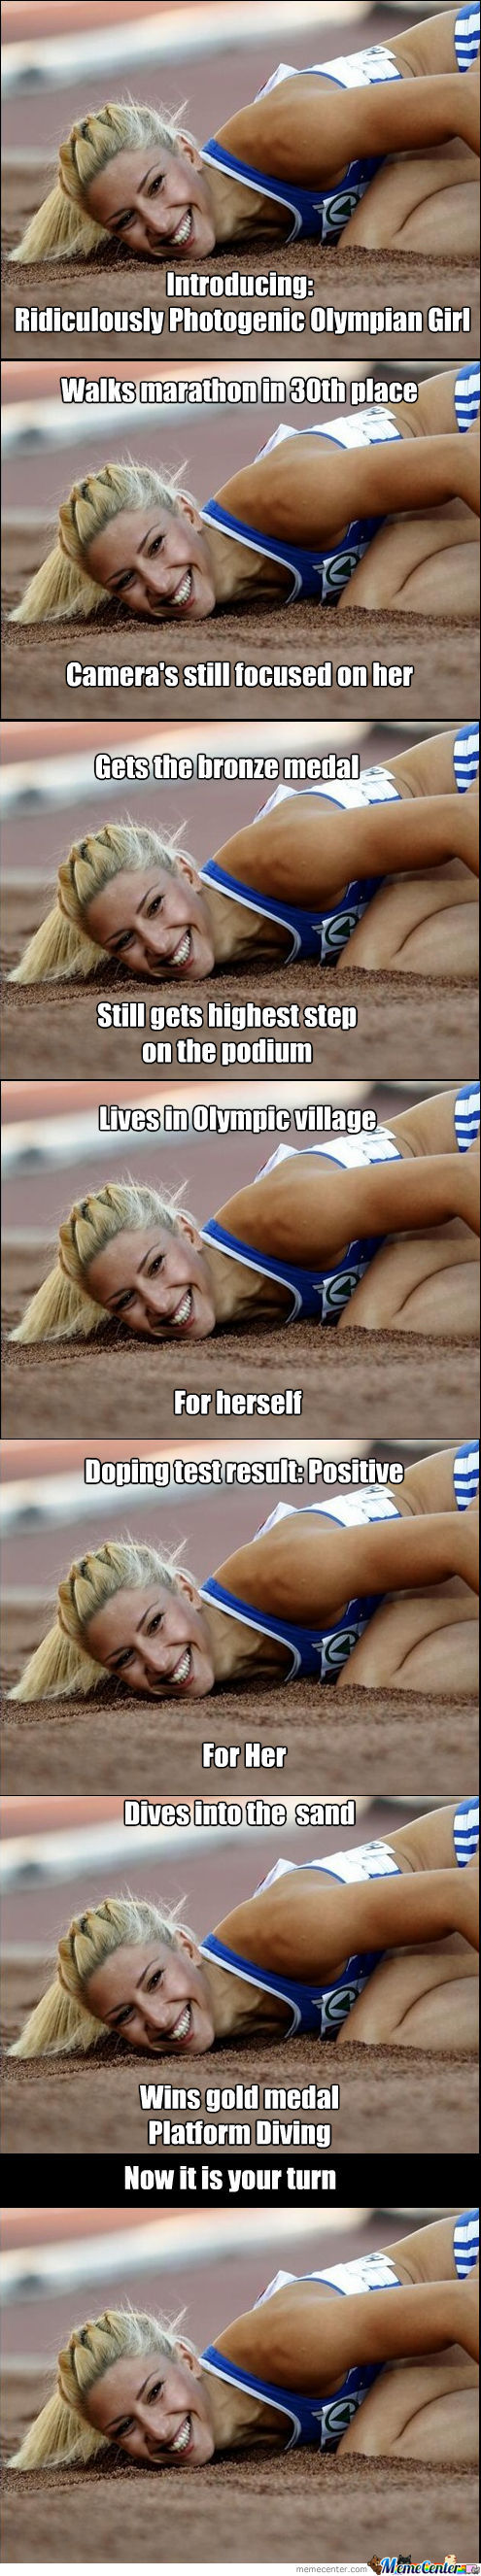 Introducing: Ridiculously Photogenic Olympian Girl